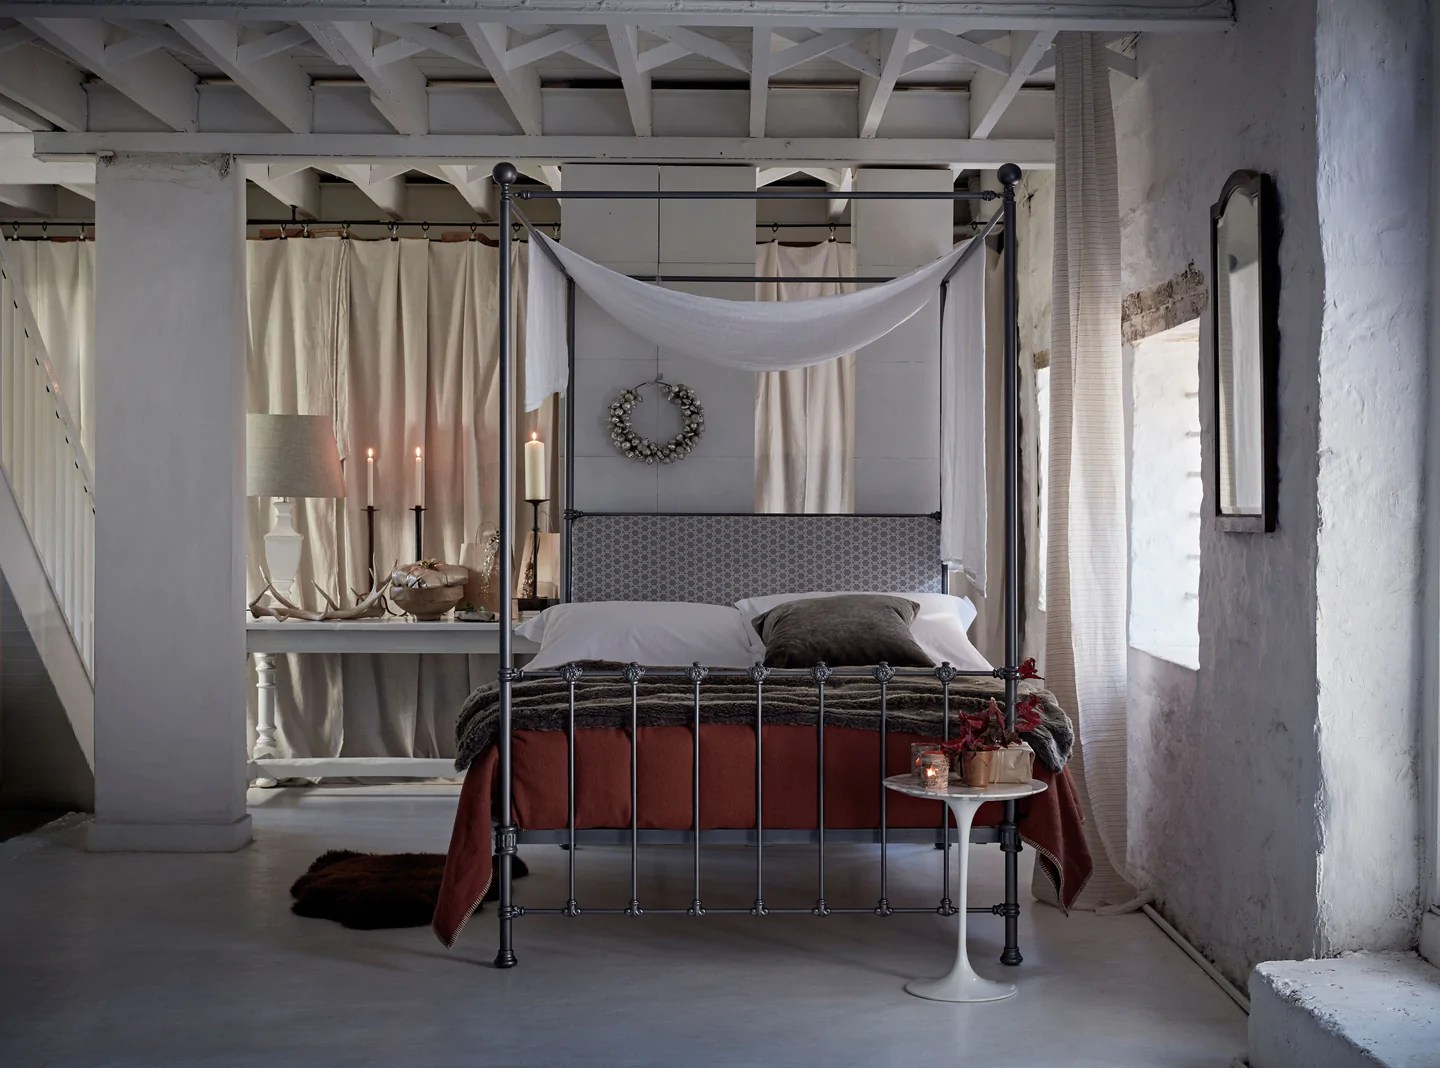 How To Dress A Metal Four Poster Bed The Cornish Bed Company Uk